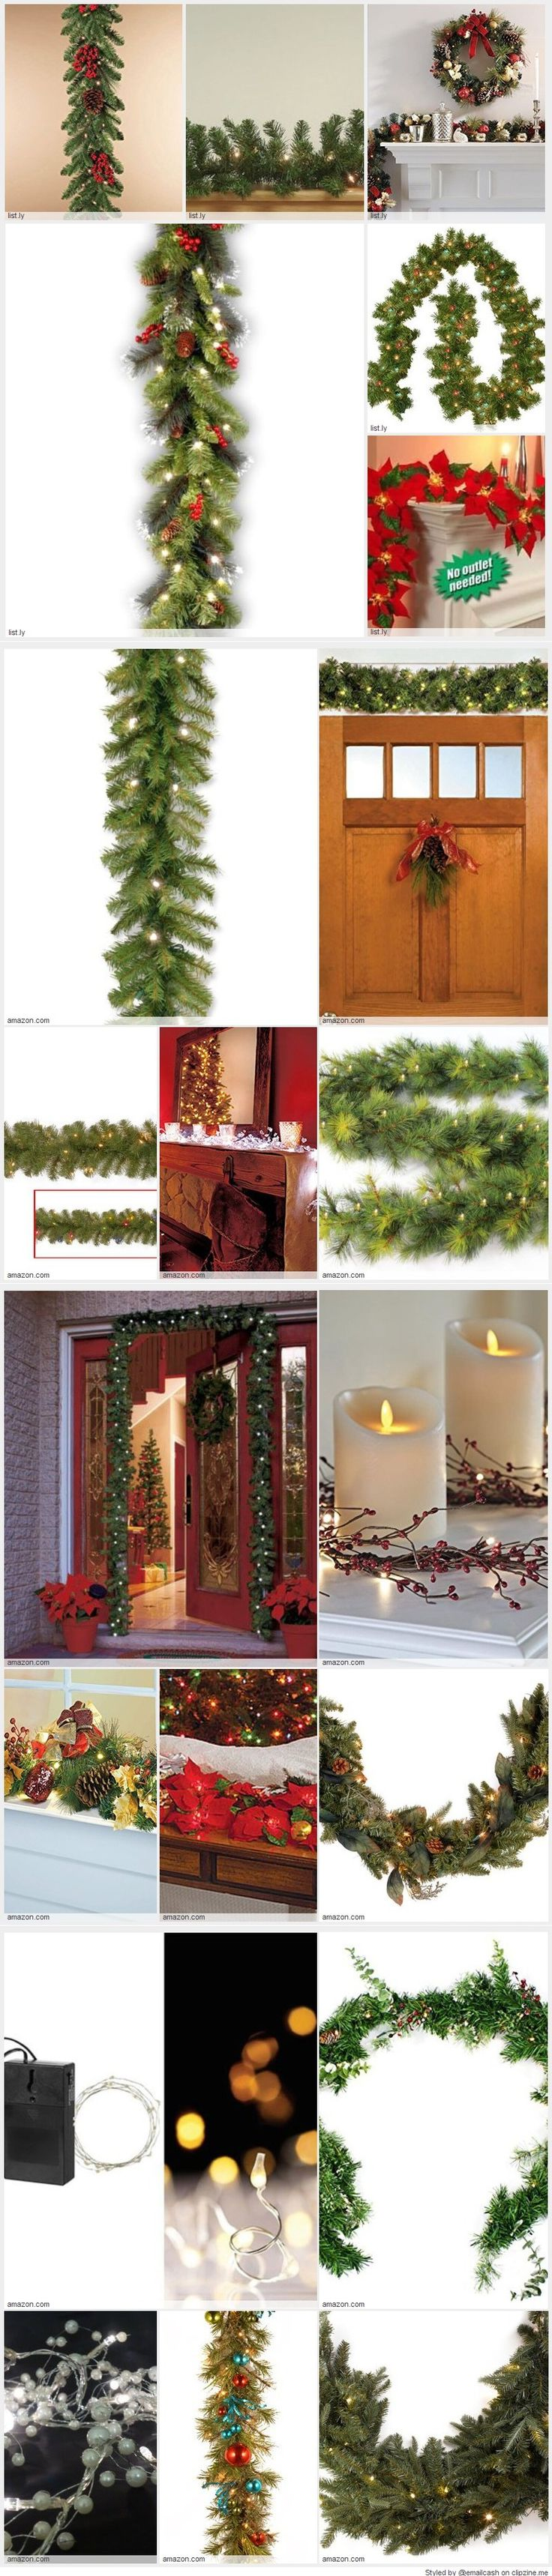 Cheap Christmas Garland With Lights - Battery operated Christmas garland makes it much easier to decorate your home for Christmas. You don't have to worry about where your electrical outlets are located or how you are going to run an extension cord without it being noticeable.